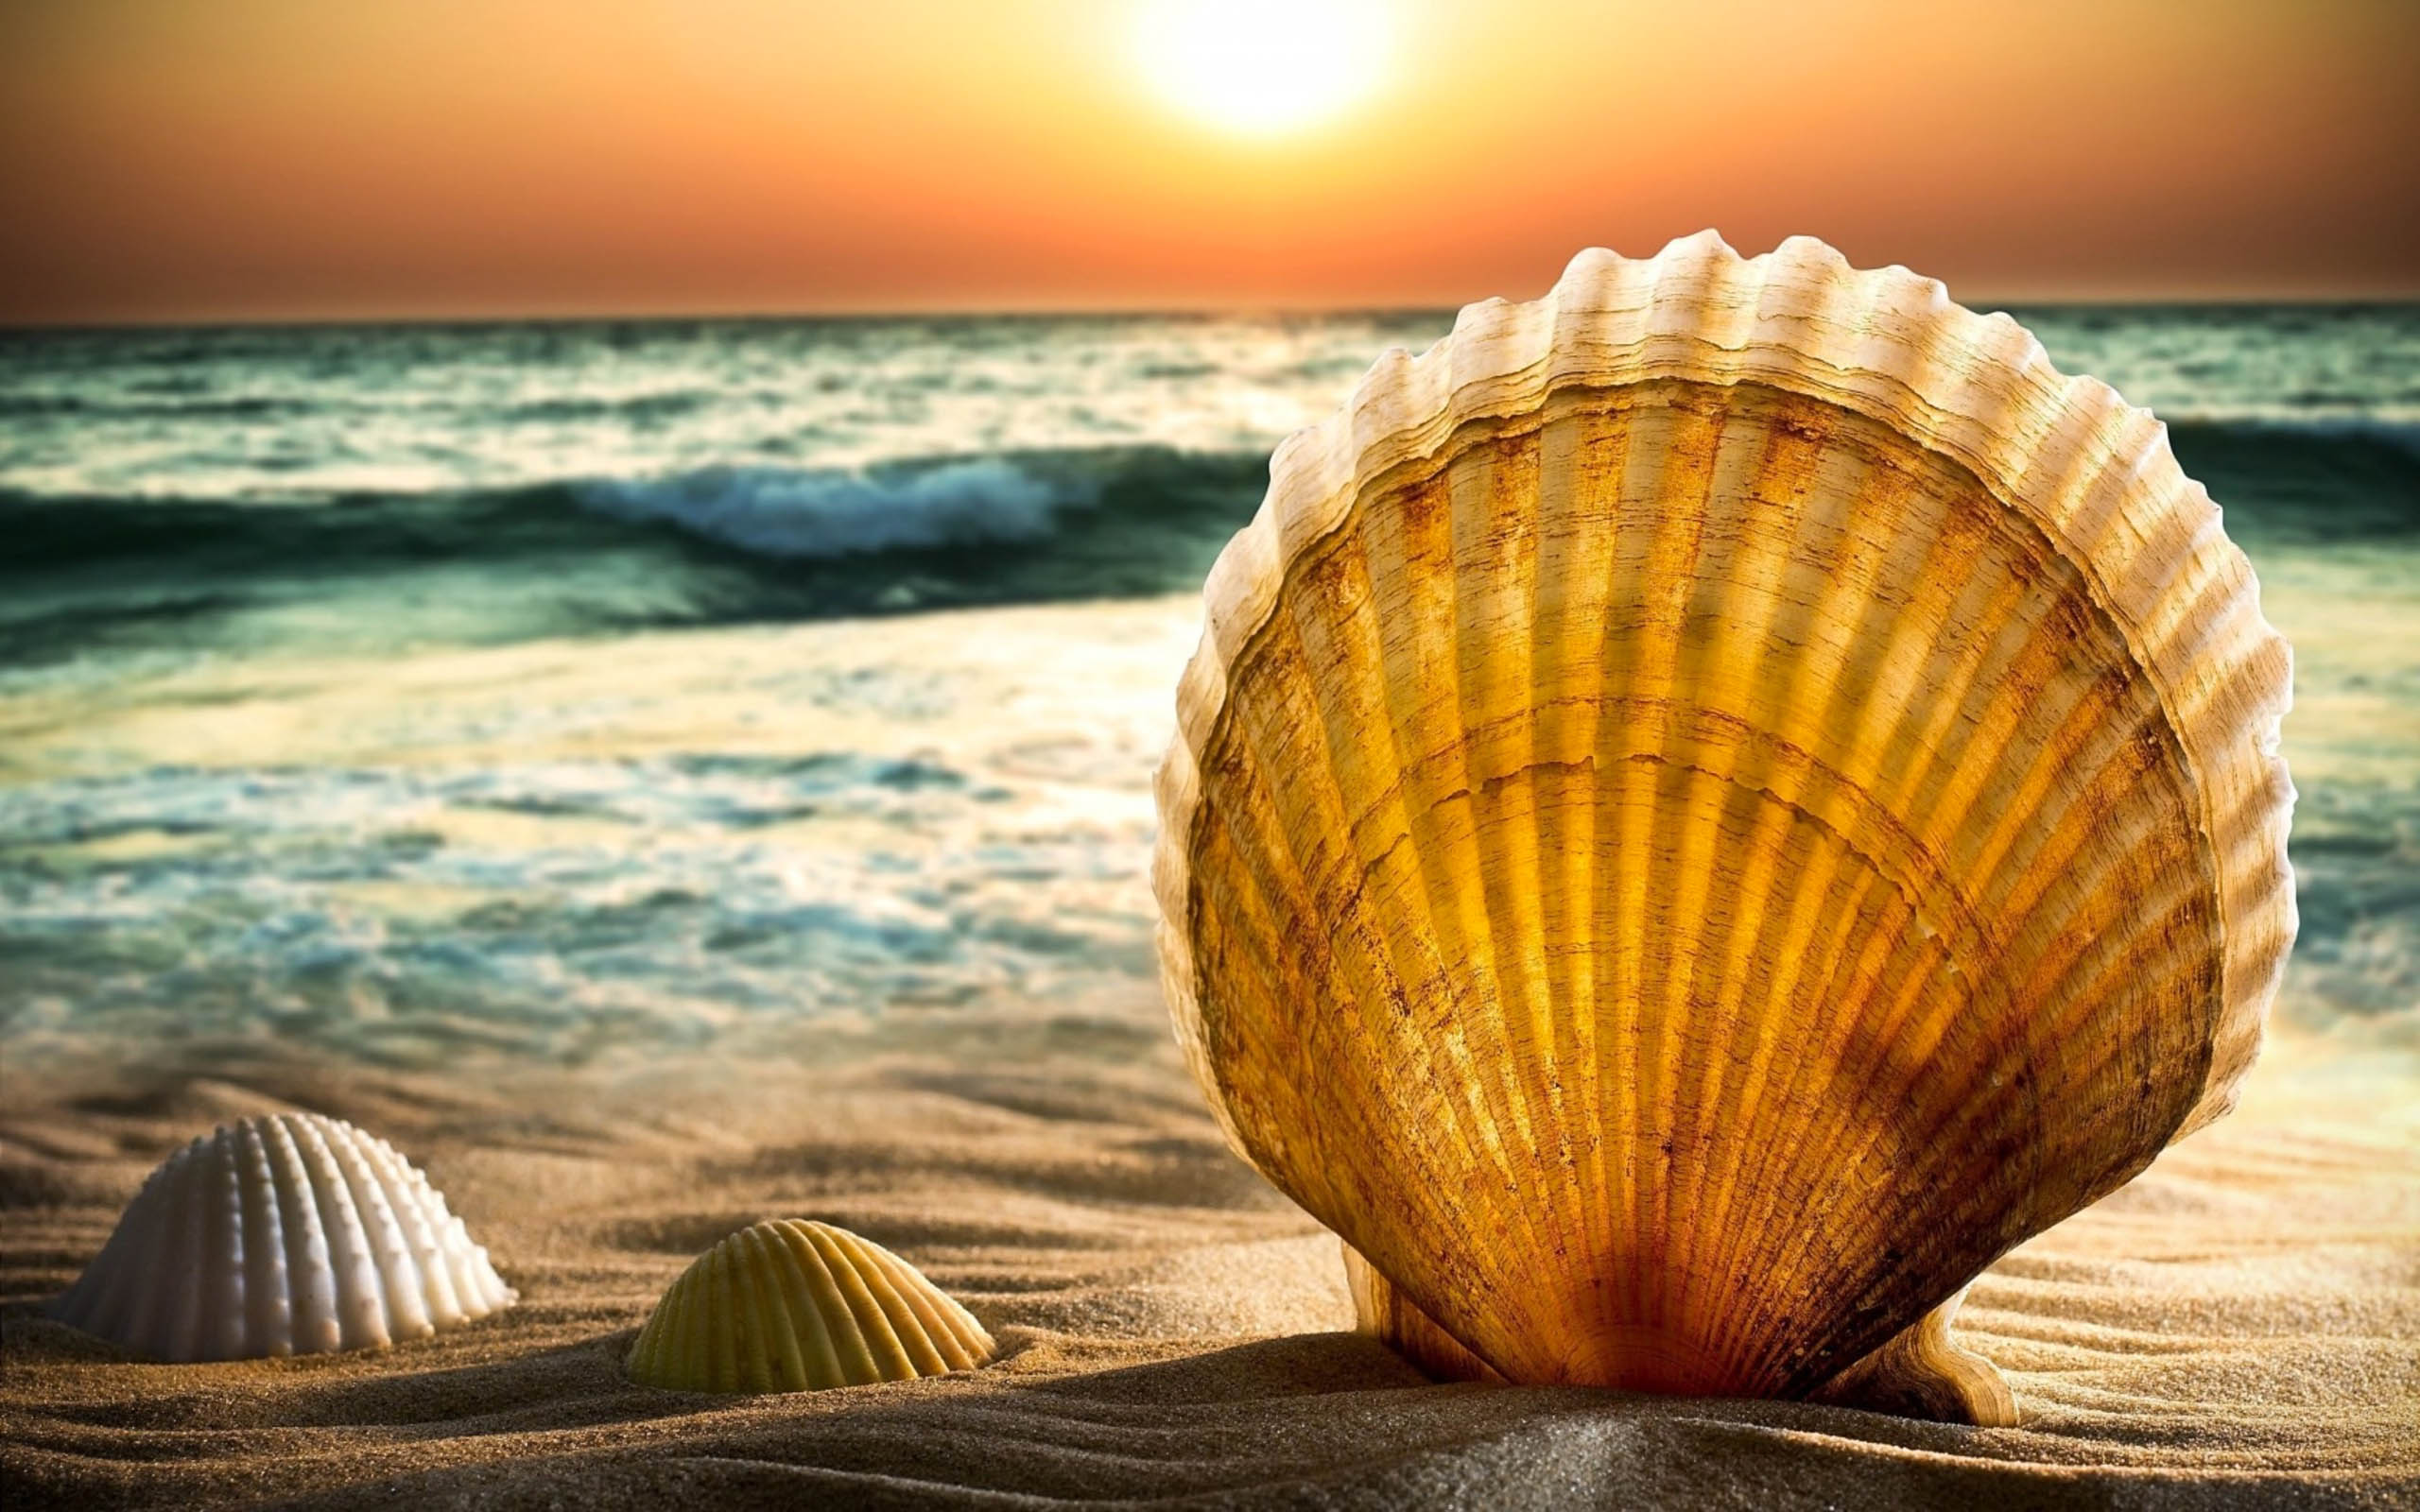 Shell awesome hd wallpapers 2015 high quality all hd for Quality wallpaper